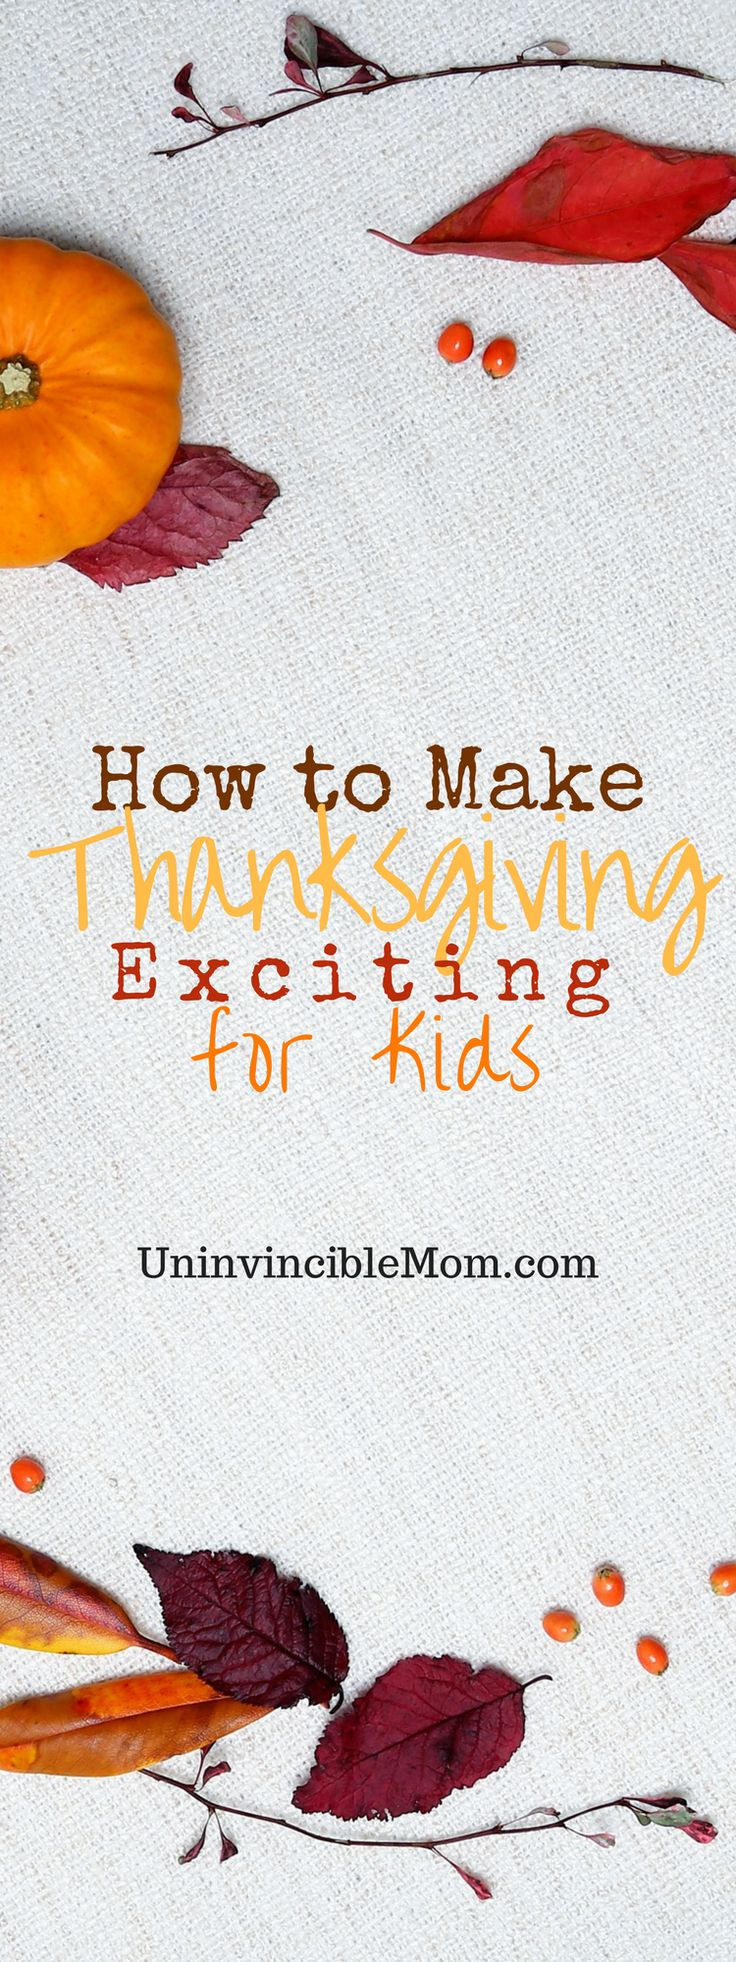 How to Make Thanksgiving Exciting for Kids | Uninvincible Mom